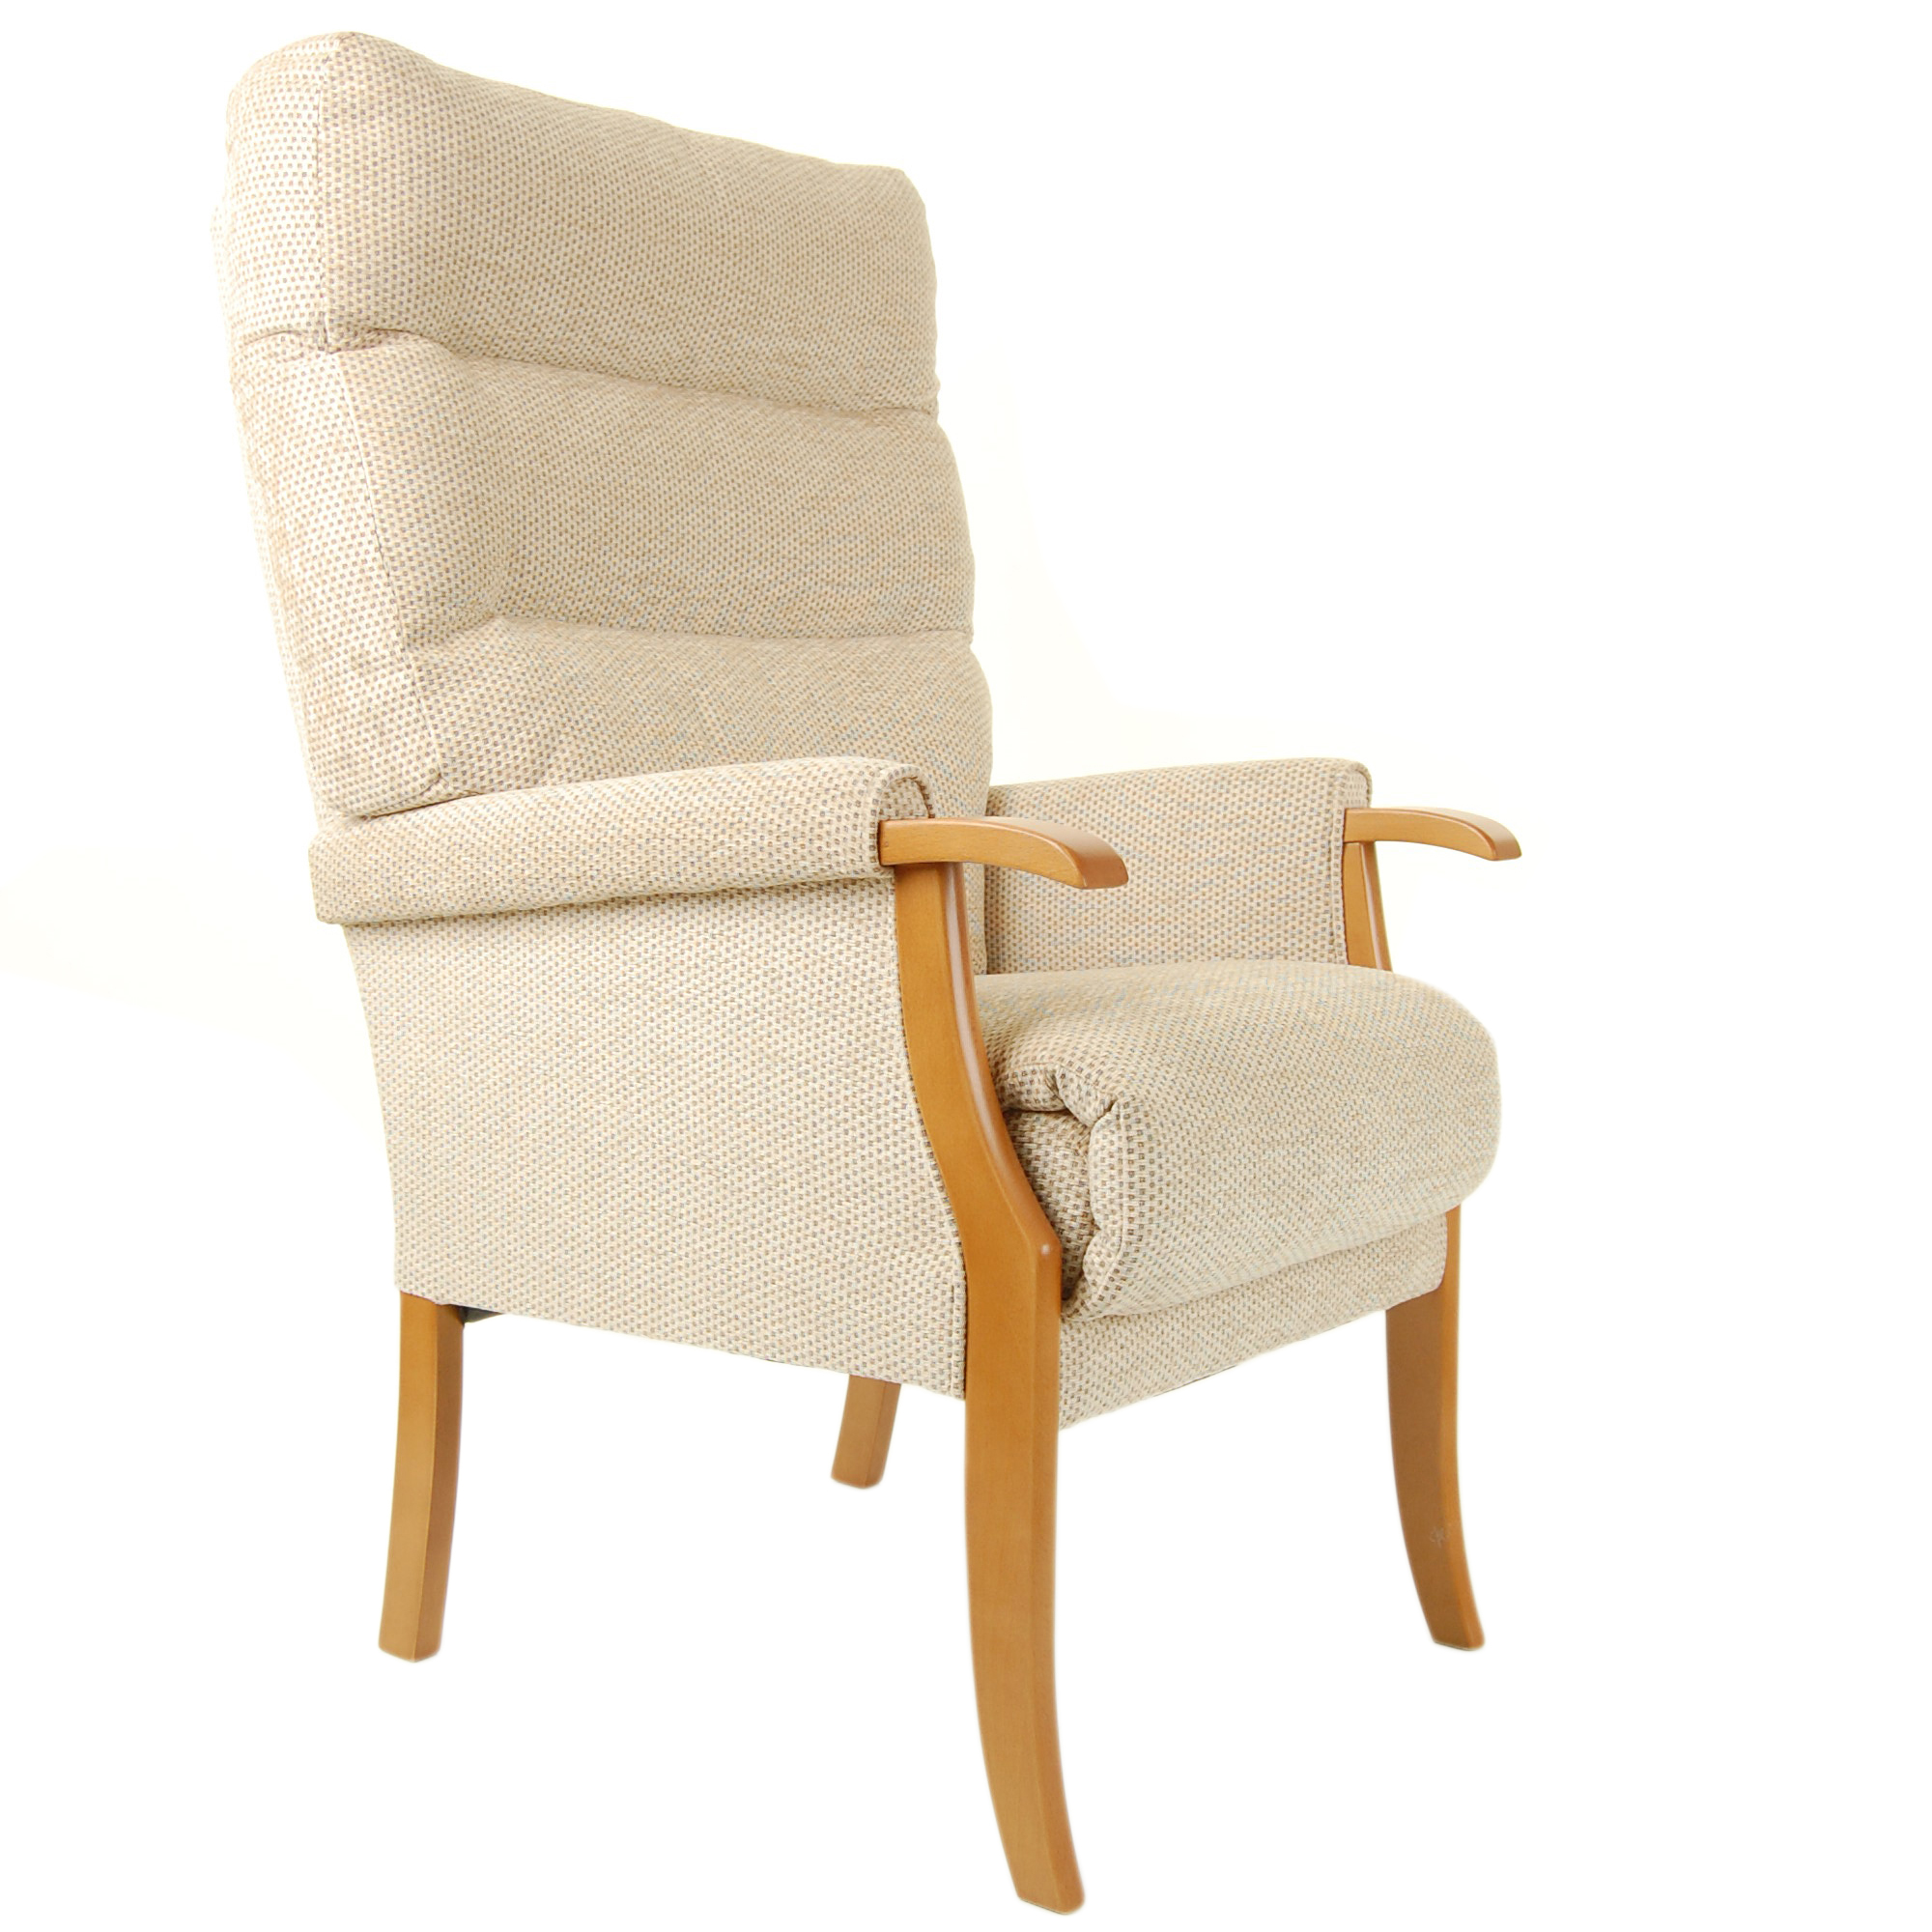 The Benefits Of High Seat Chairs Cheap Recliner Chairs